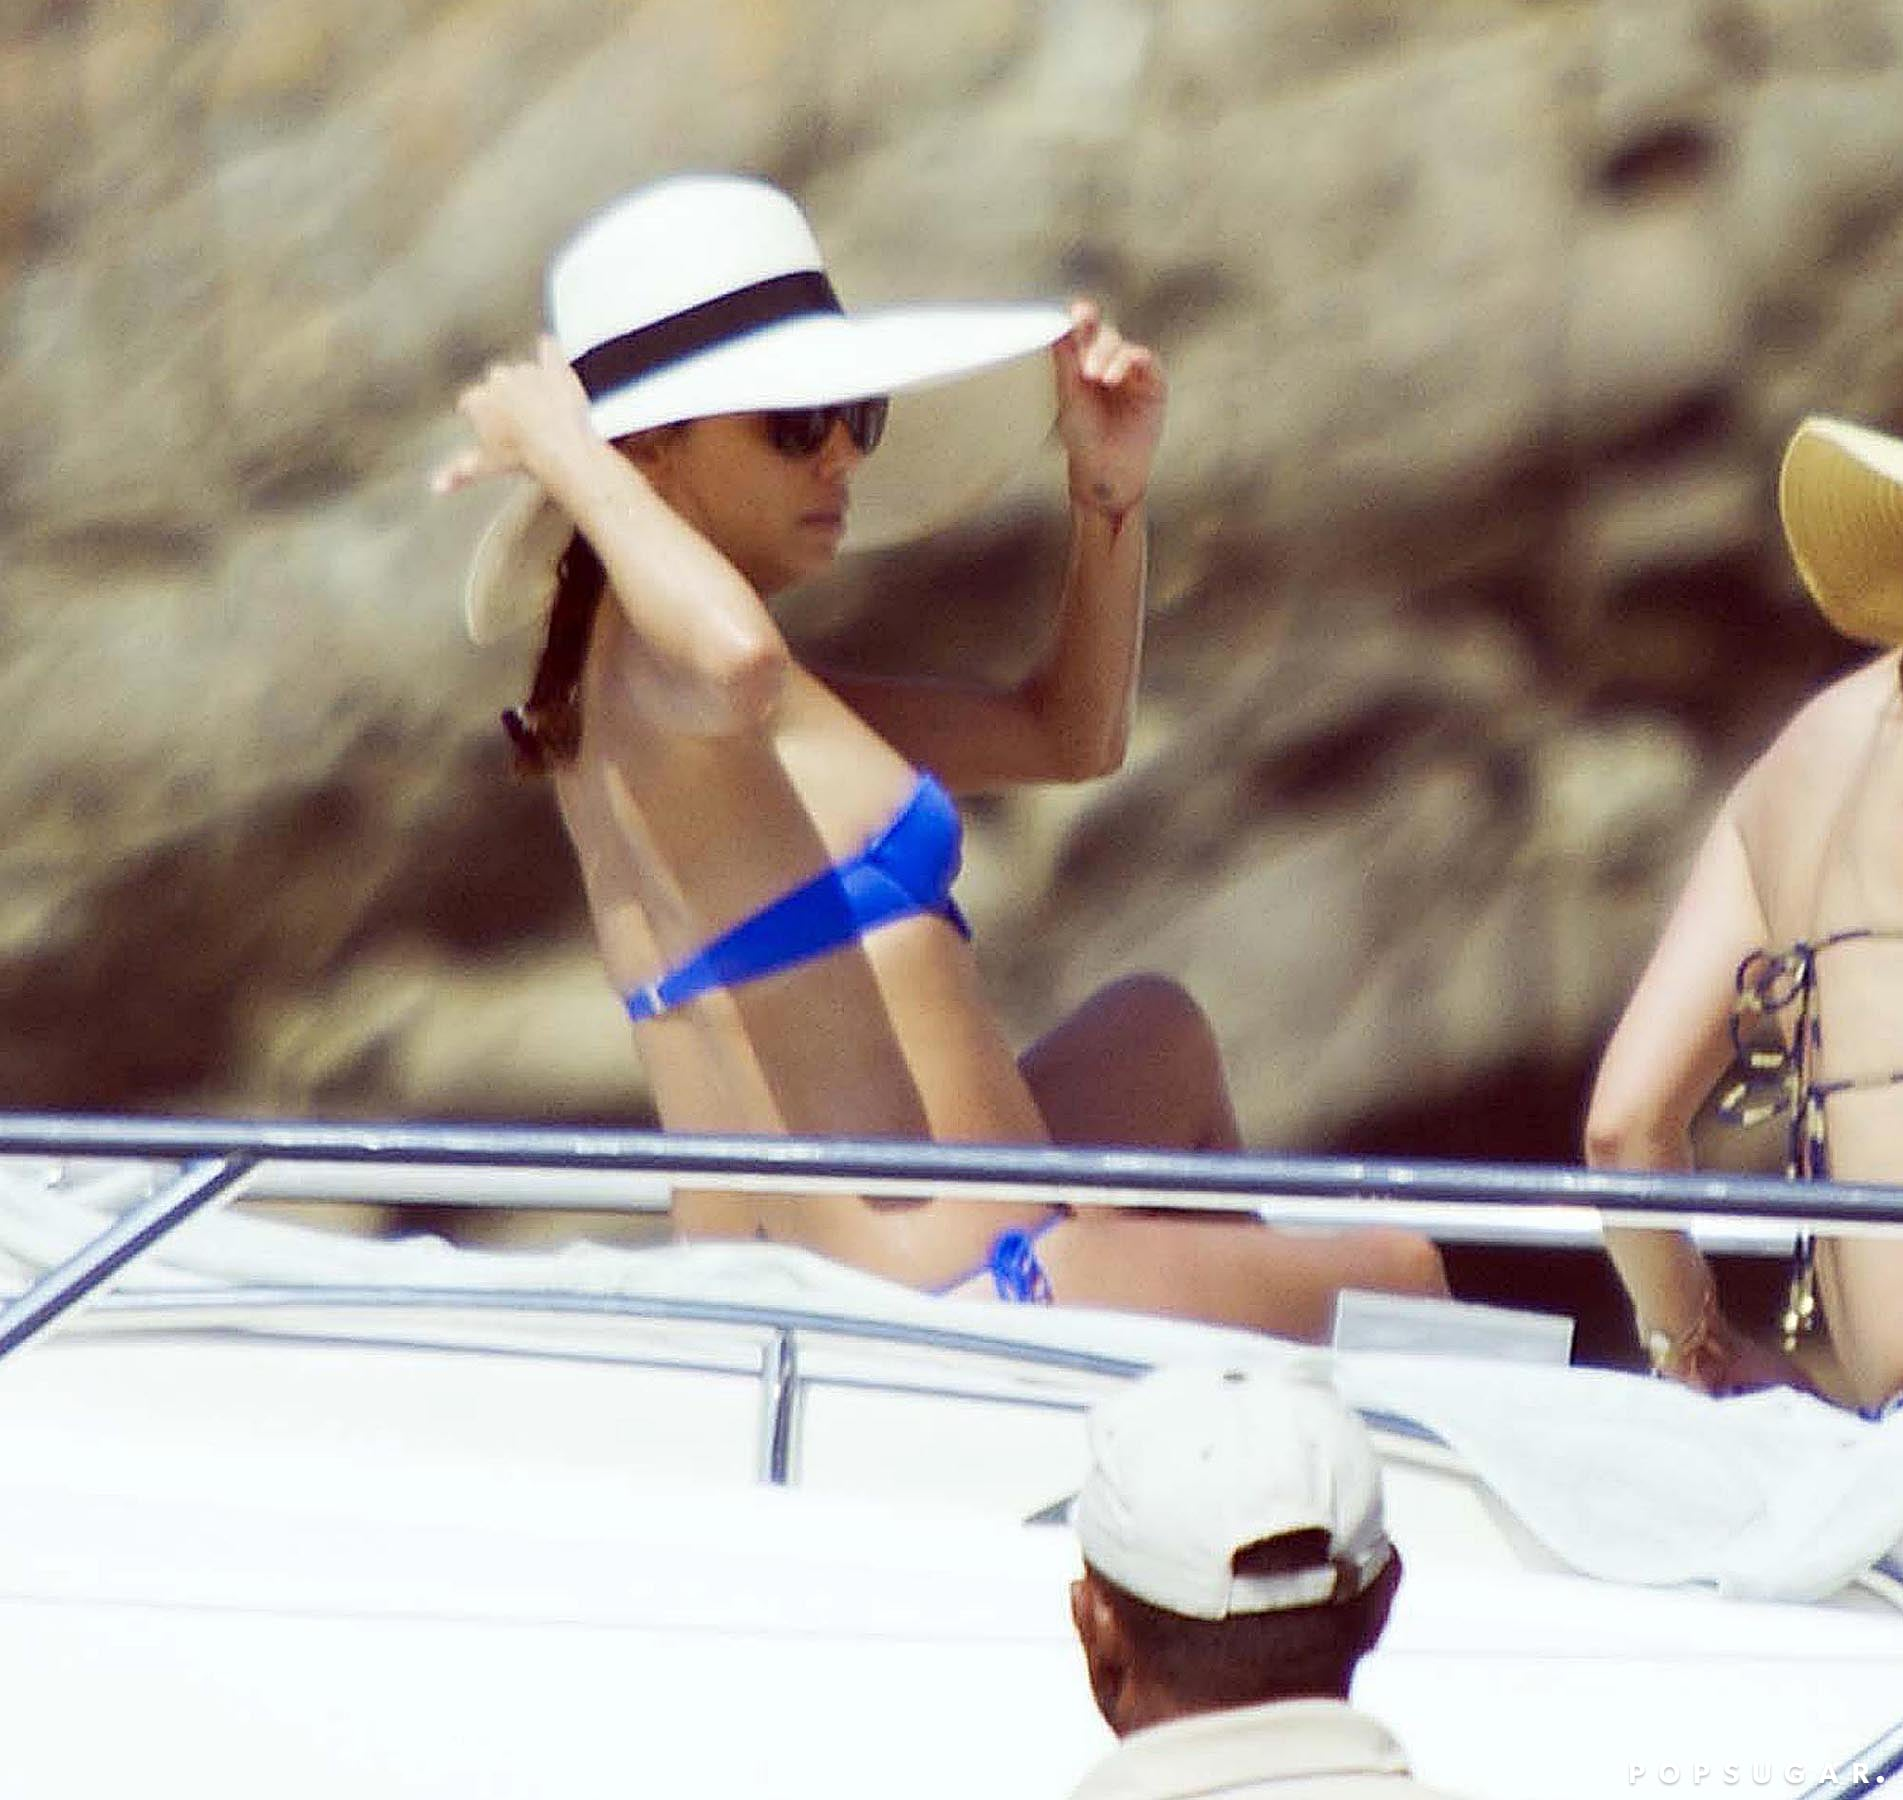 She shaded her face from the sun while lounging on a friend's yacht.